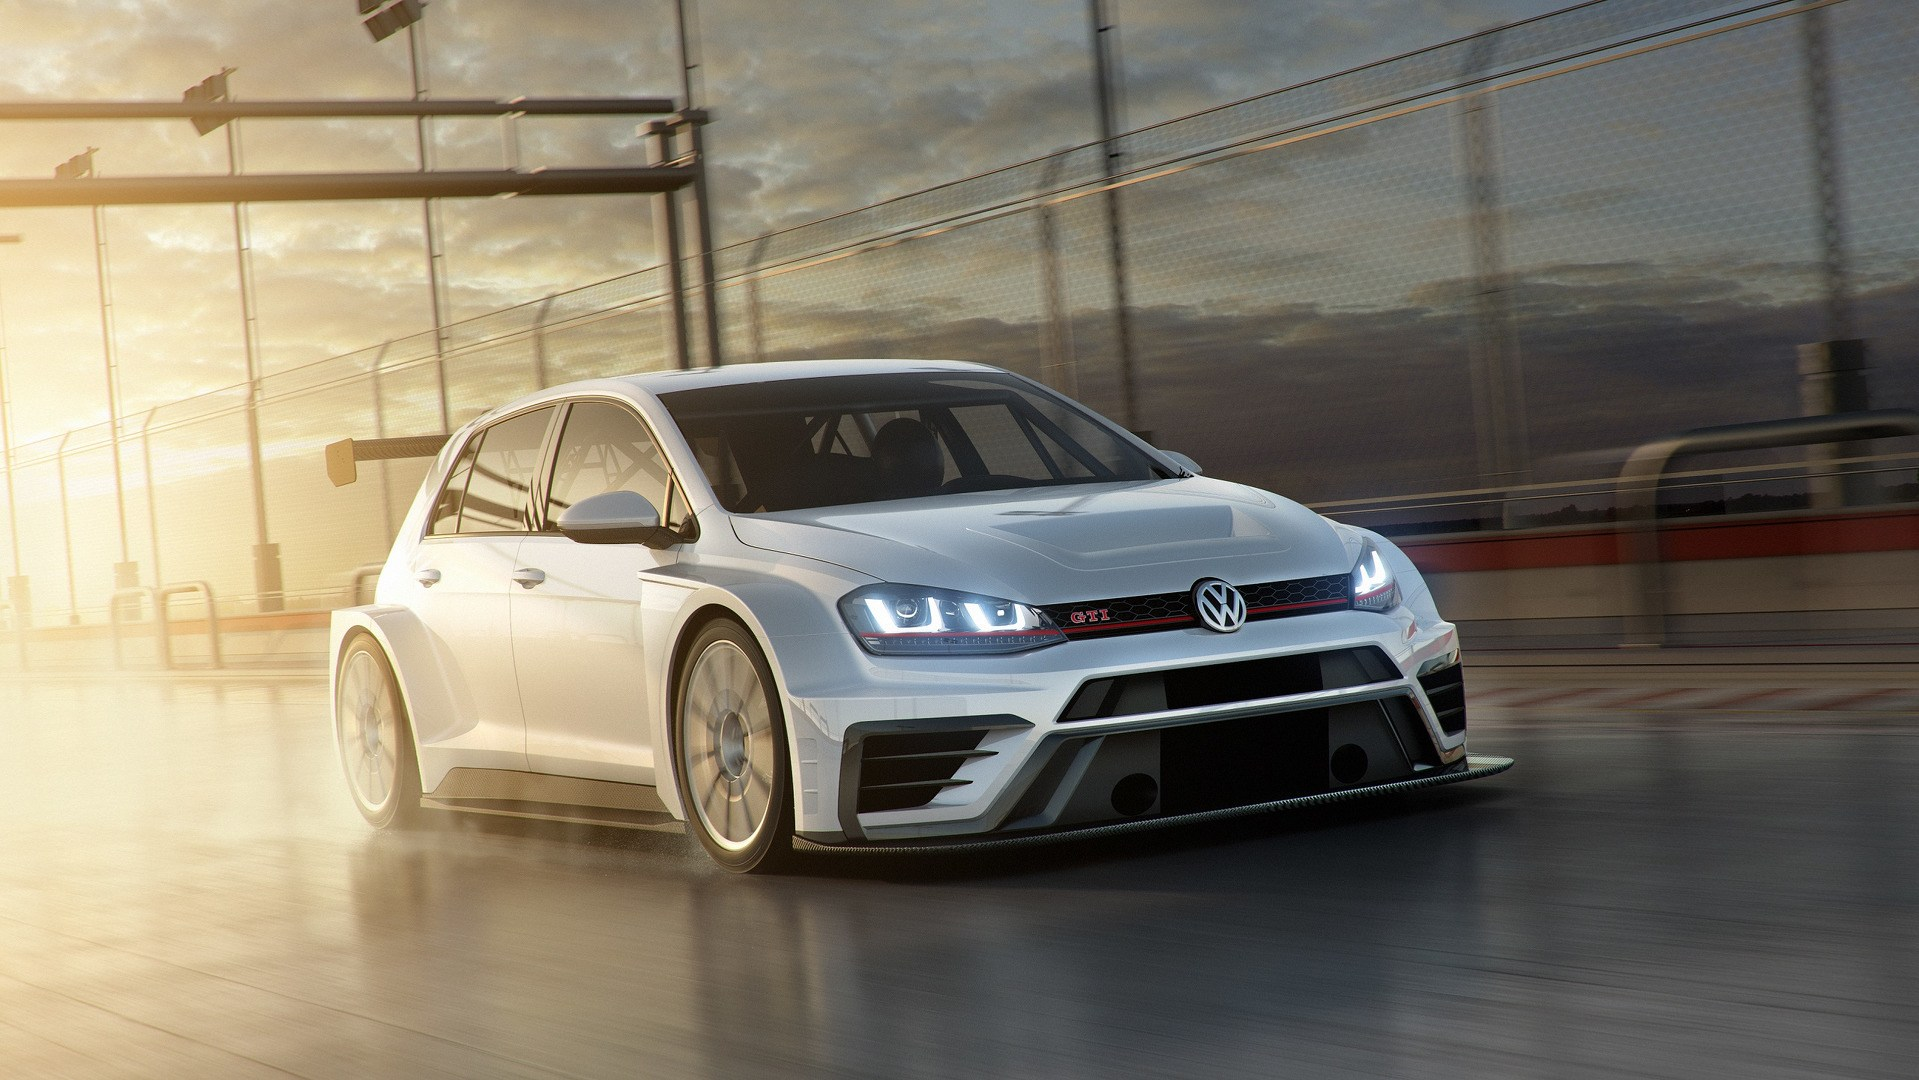 2018 volkswagen golf gti tcr. Black Bedroom Furniture Sets. Home Design Ideas